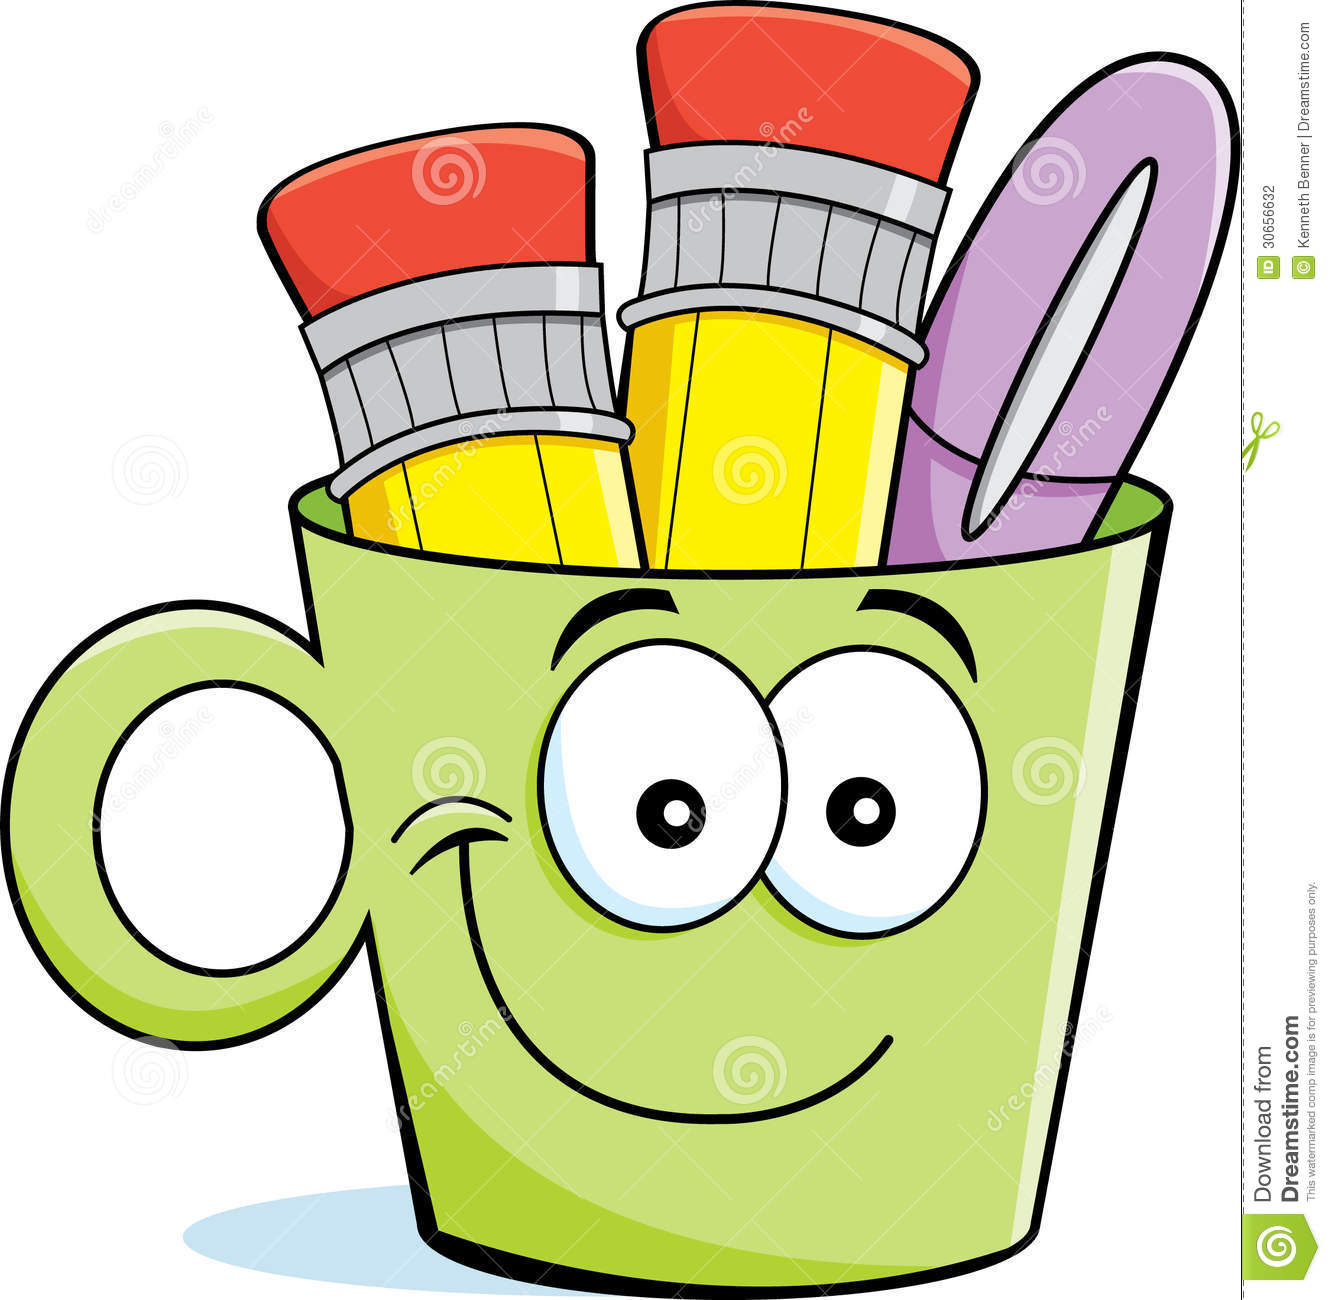 Cartoon illustration of a cup filled with pencils and a pen.